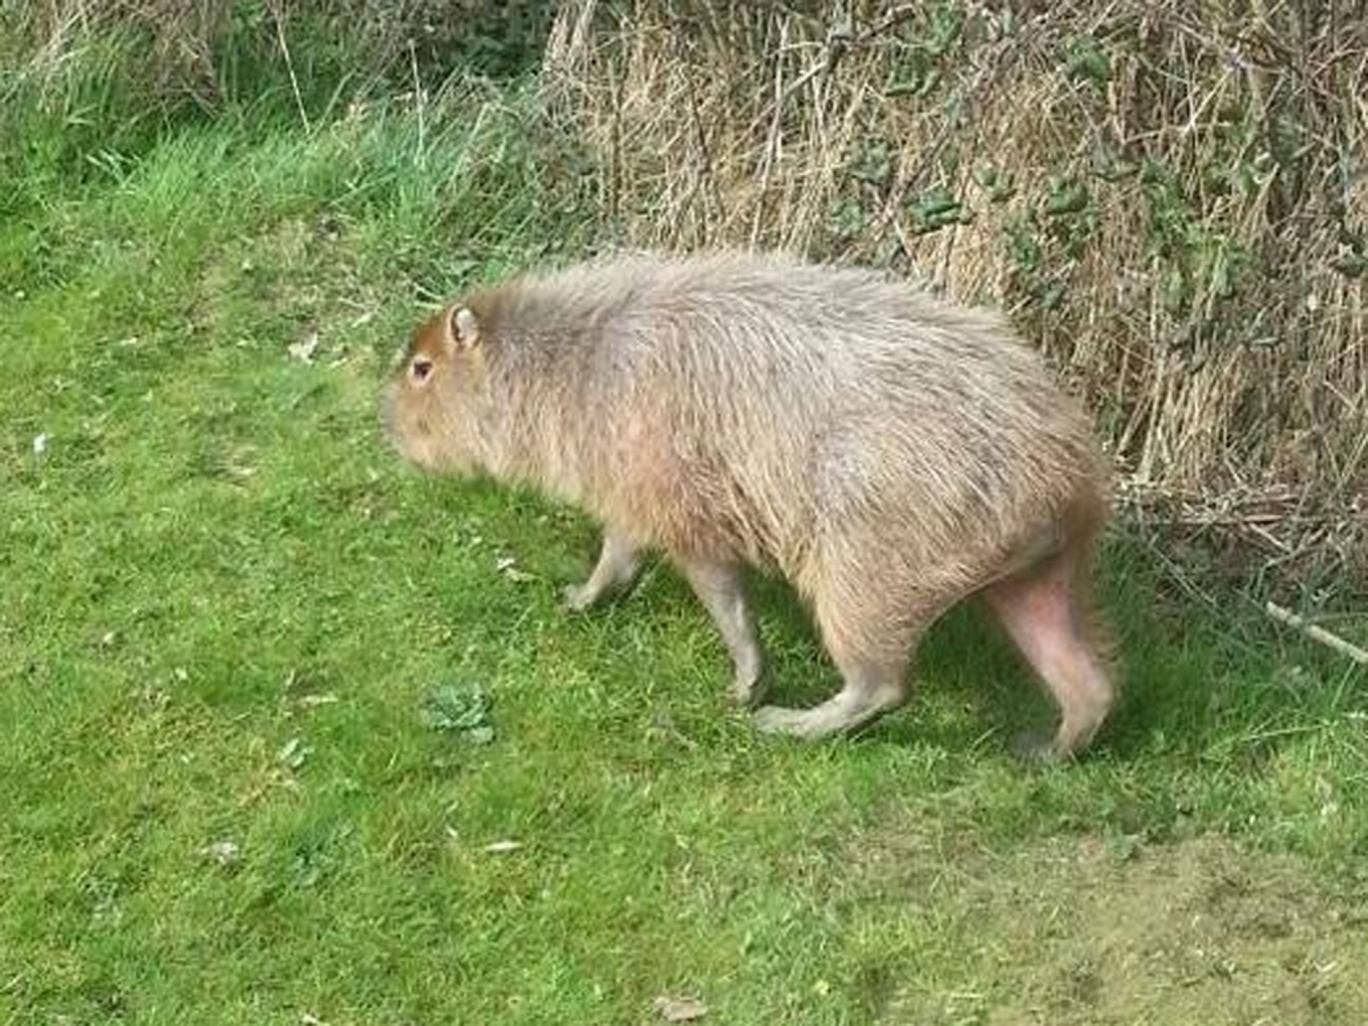 A capybara - the largest species of rodent in the world - has been causing a commotion on a golf course in Essex